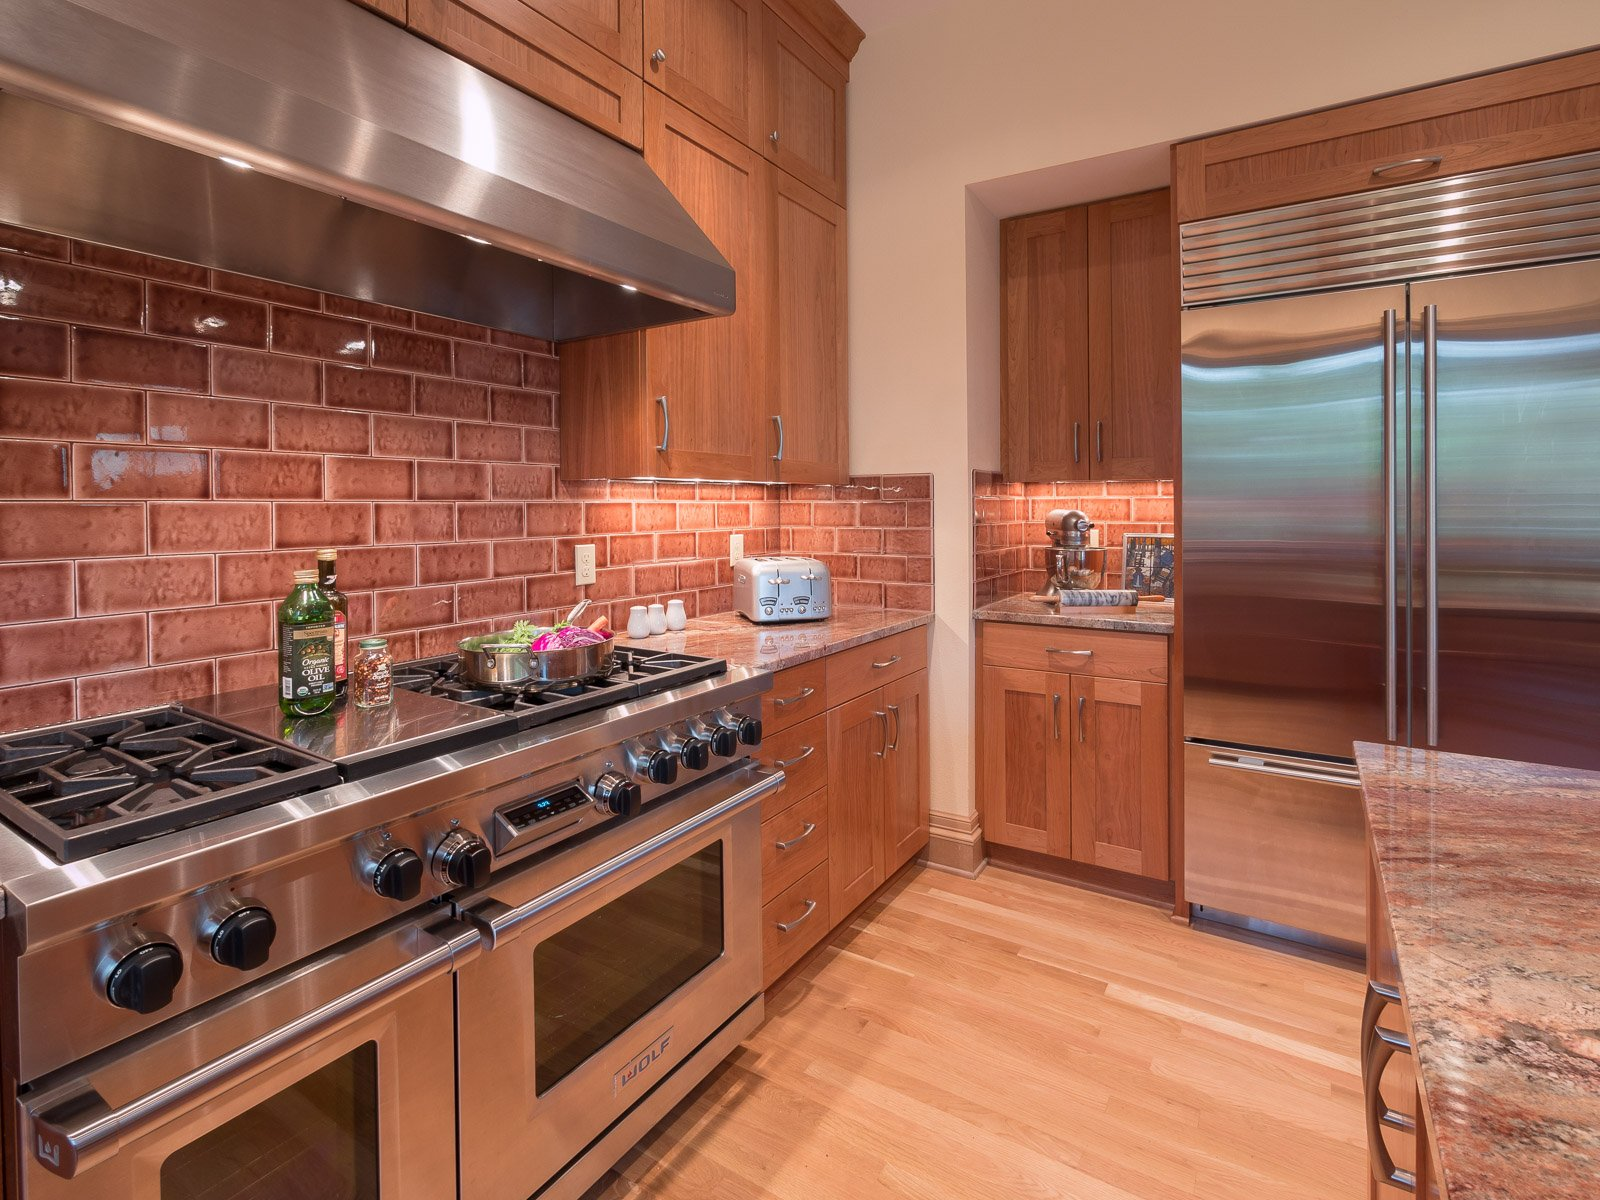 Contemporary Portland kitchen with stainless steel appliances and brick backsplash